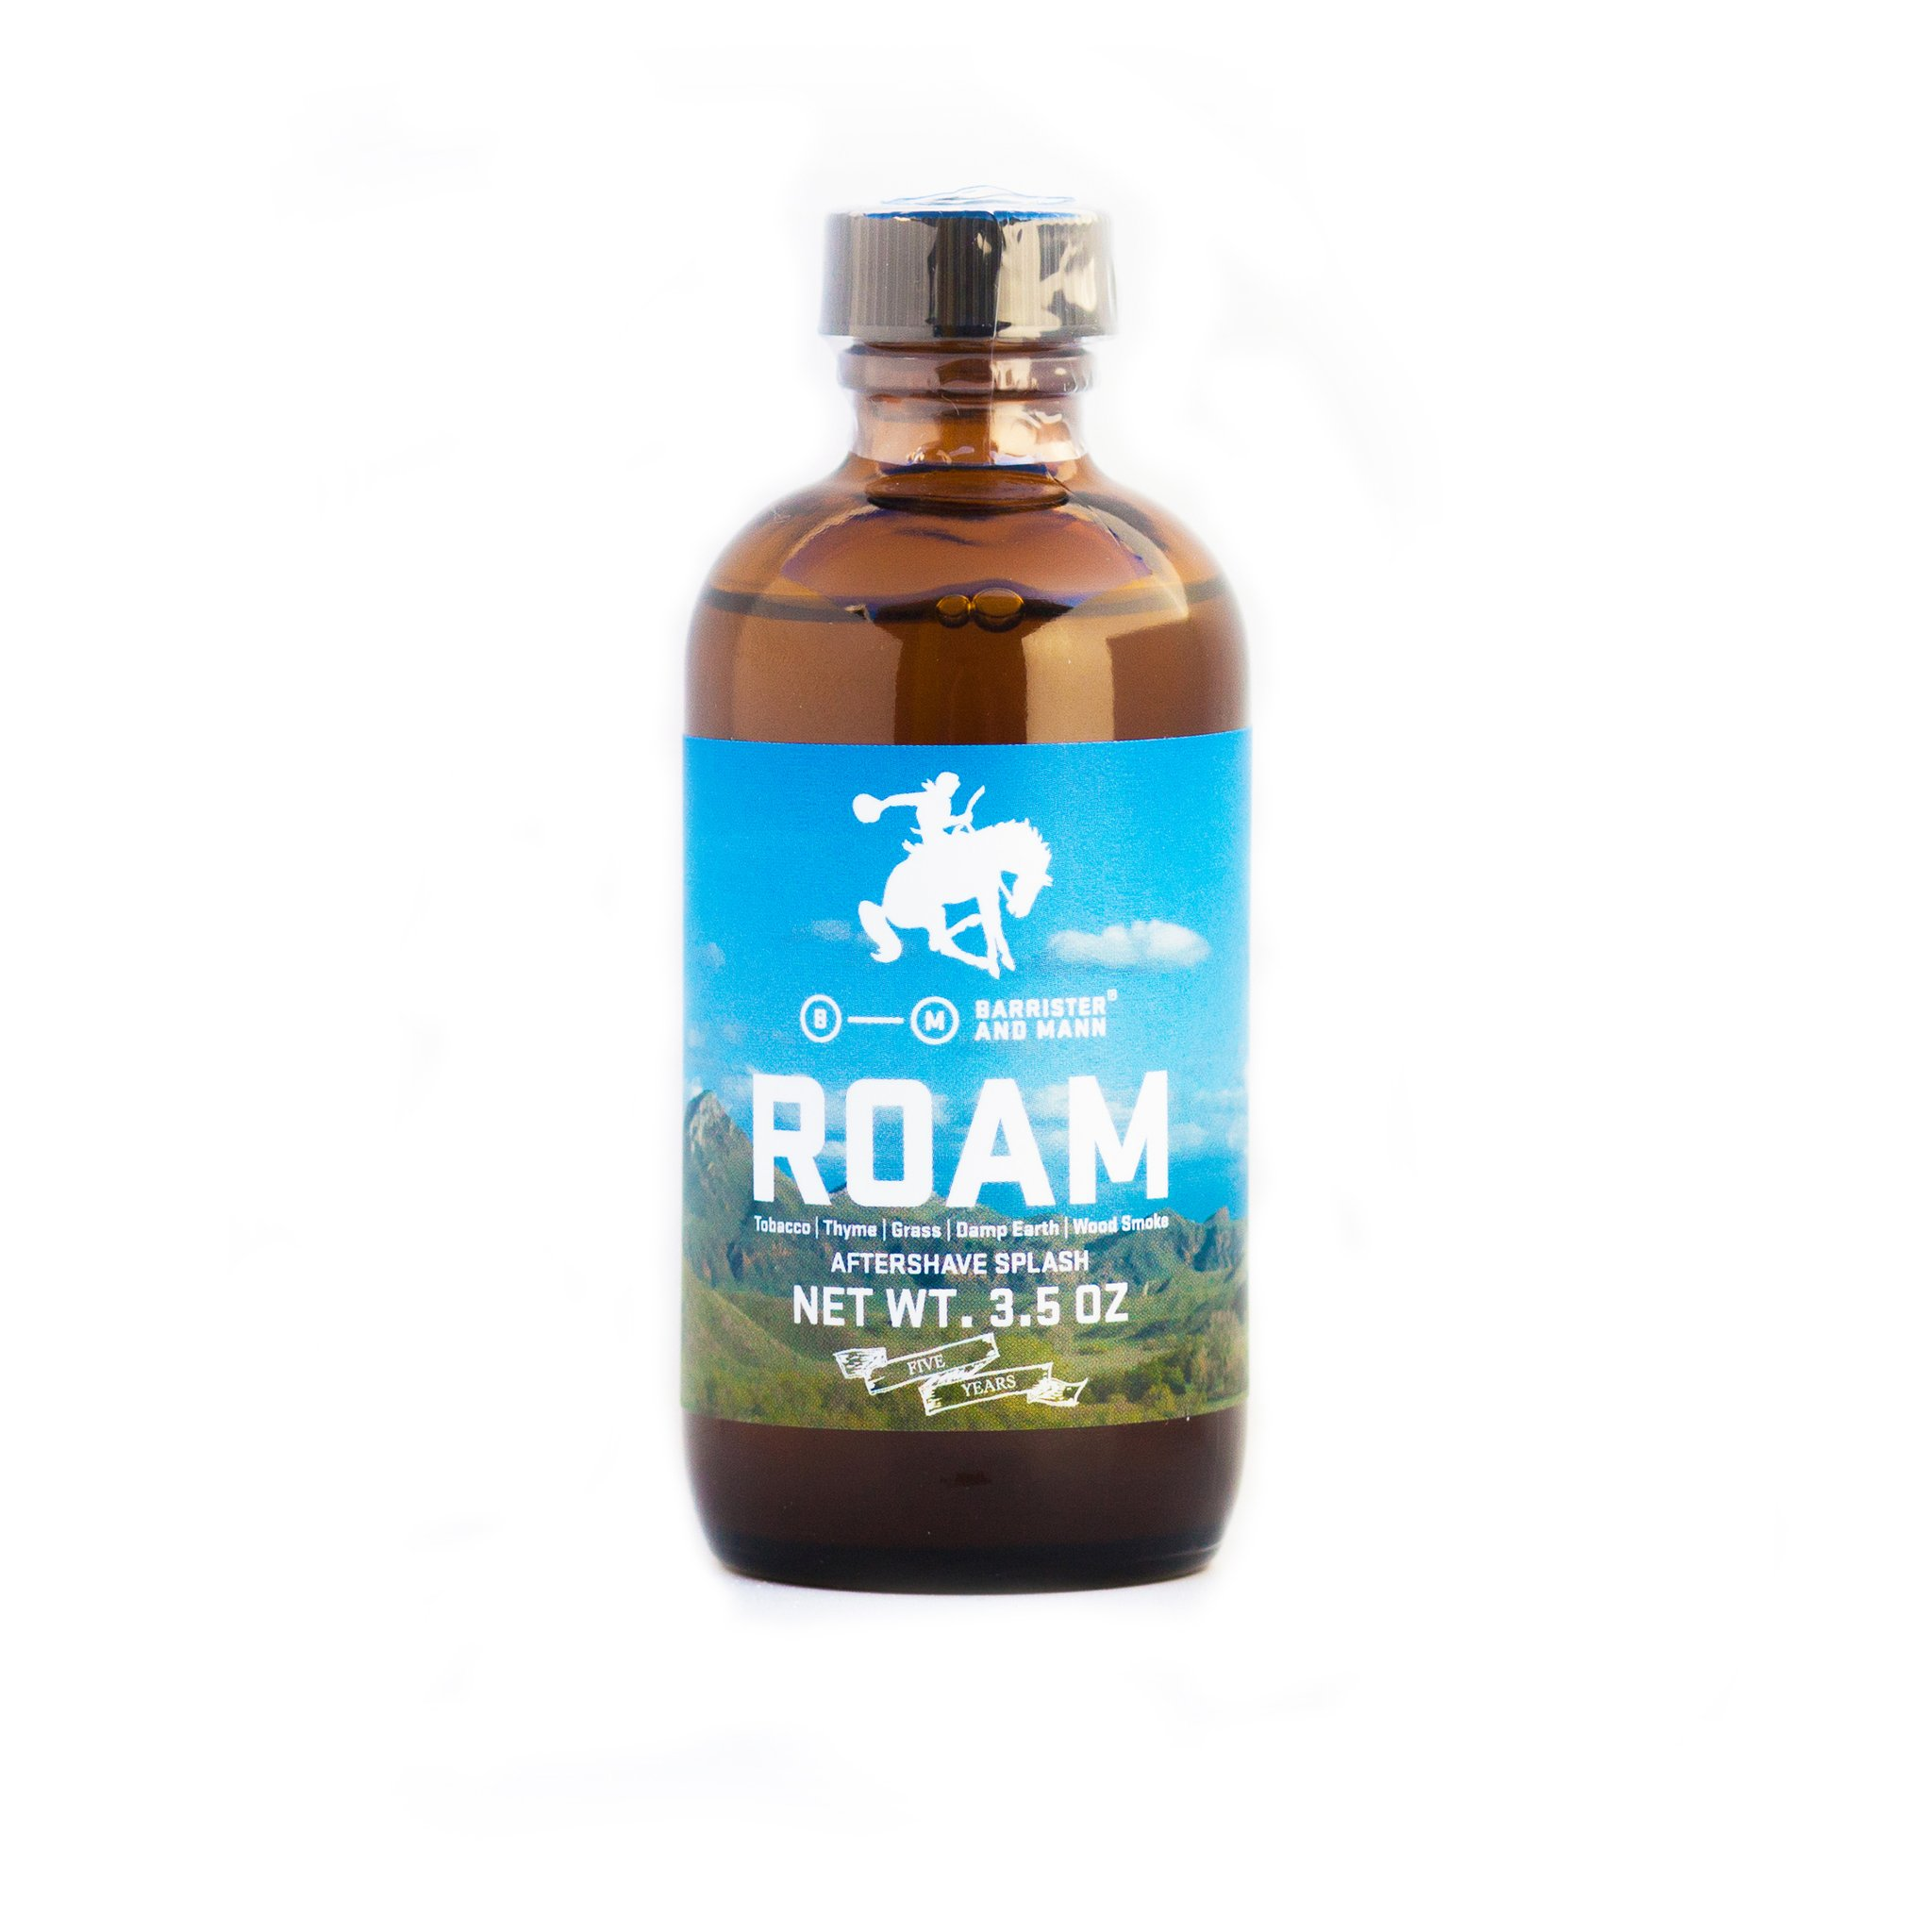 Barrister and Mann - Barrister and Mann - Roam - Splash image